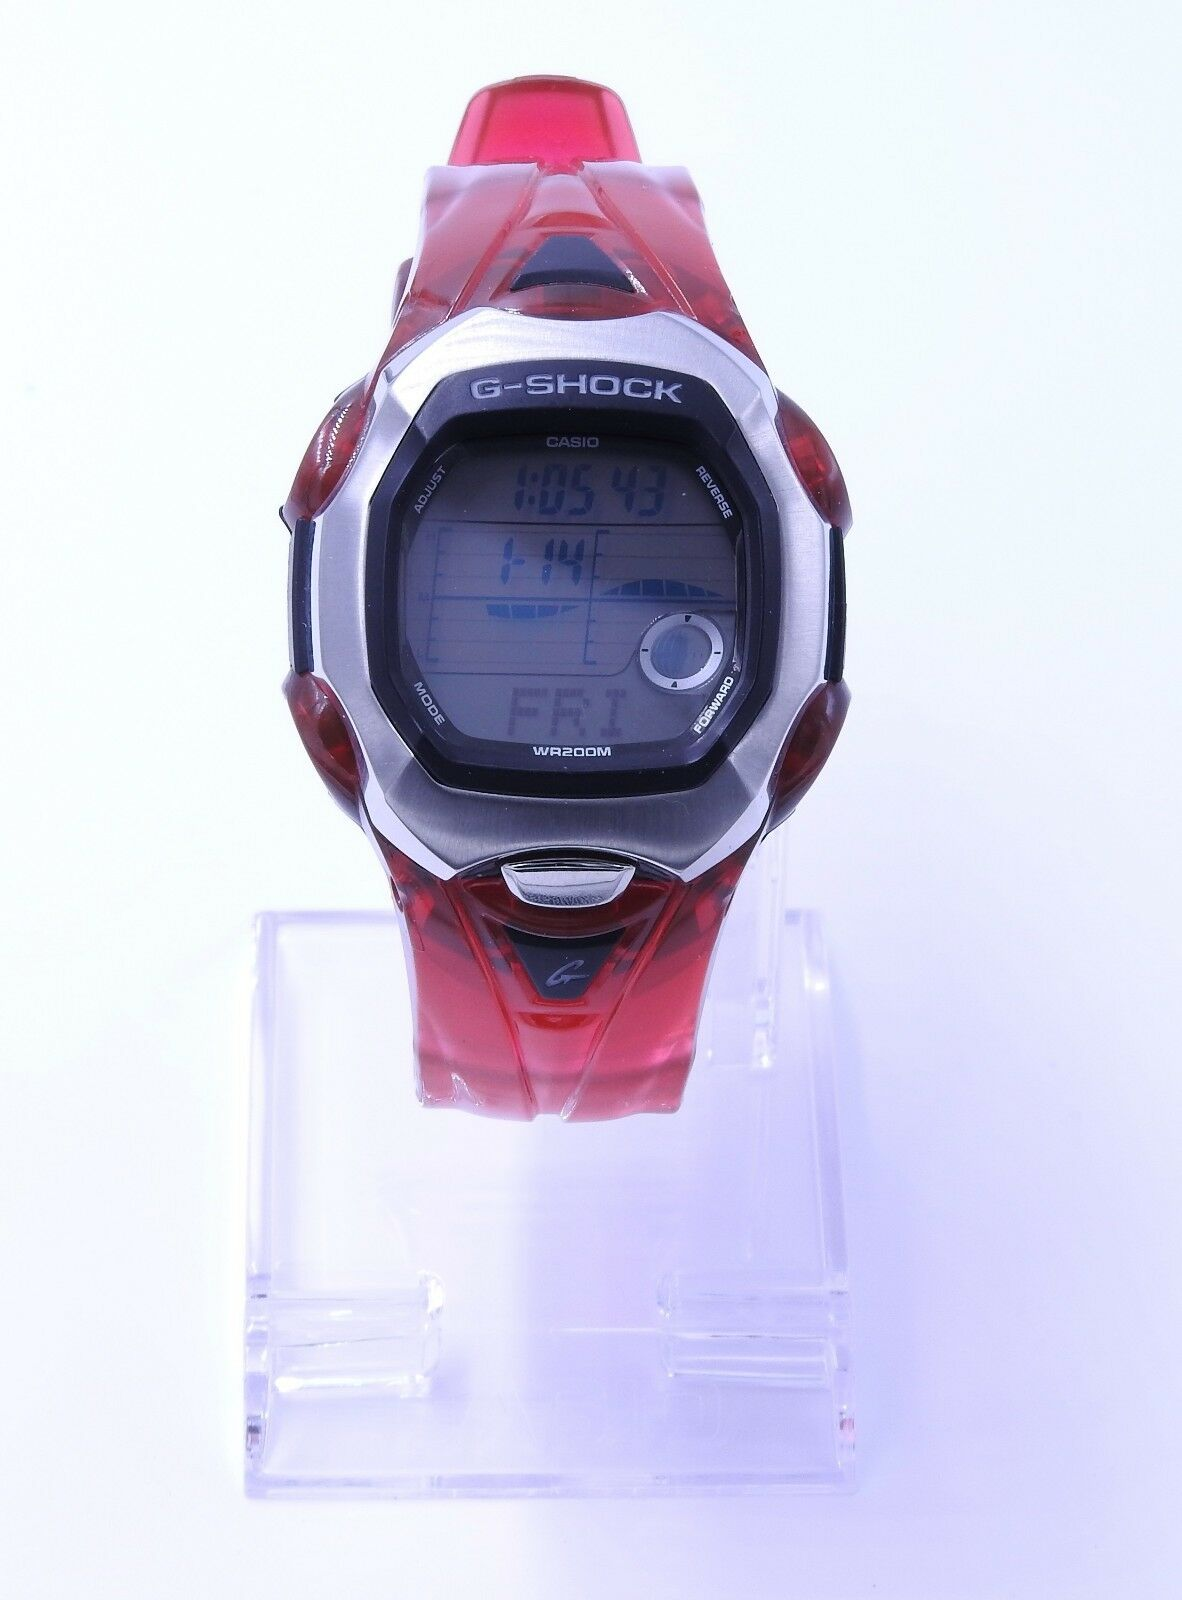 Casio G Shock Gl 150 4 Jelly Red Lide Rare Digital Mens Watch 200m Gax 100a 7adr Origina 1 Of 7only Available